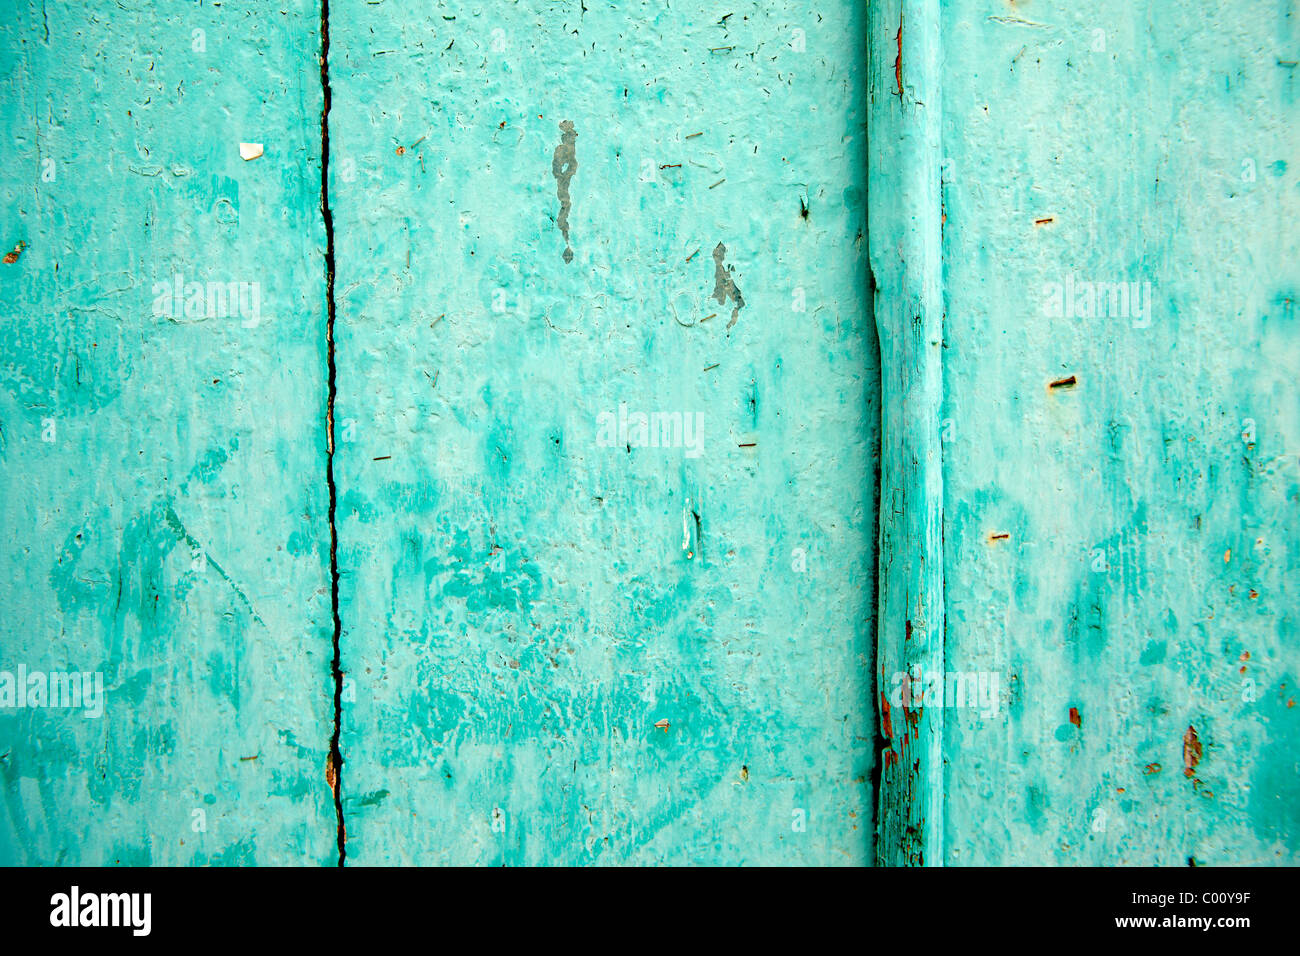 Turquoise painted door - Stock Image